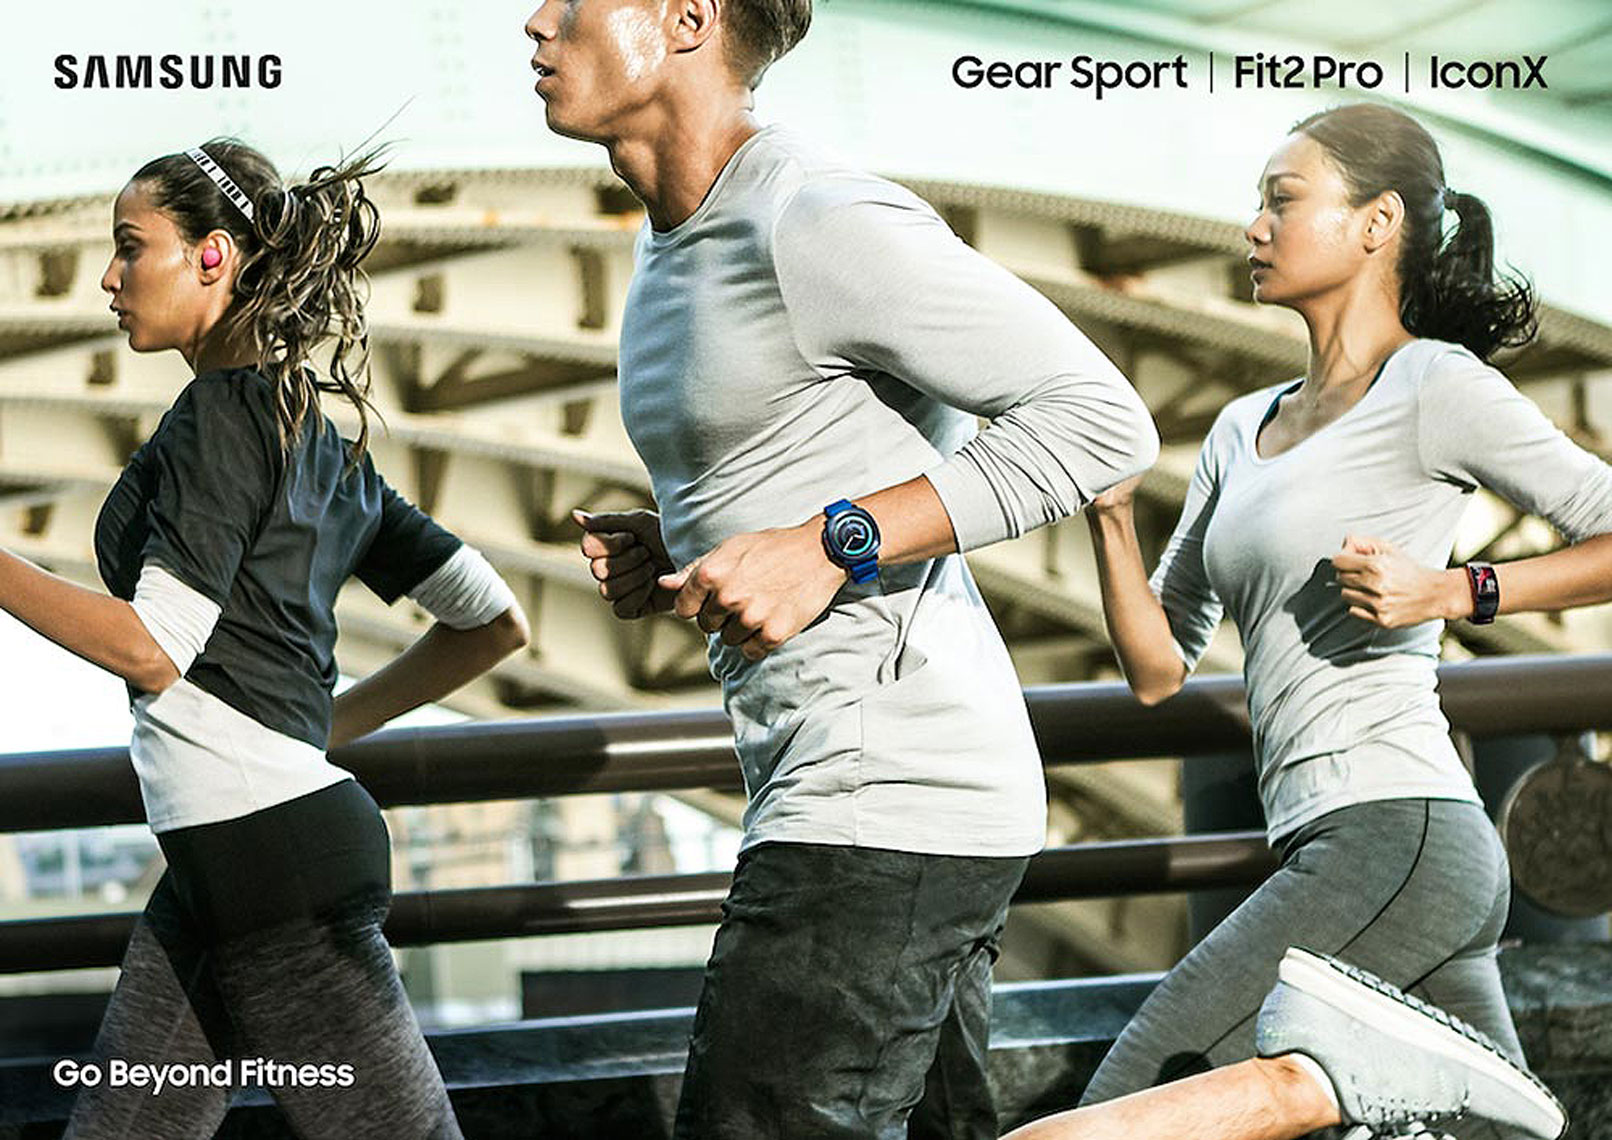 issie-gibbons-fashion-stylist-samsung-global-campaign-group-running